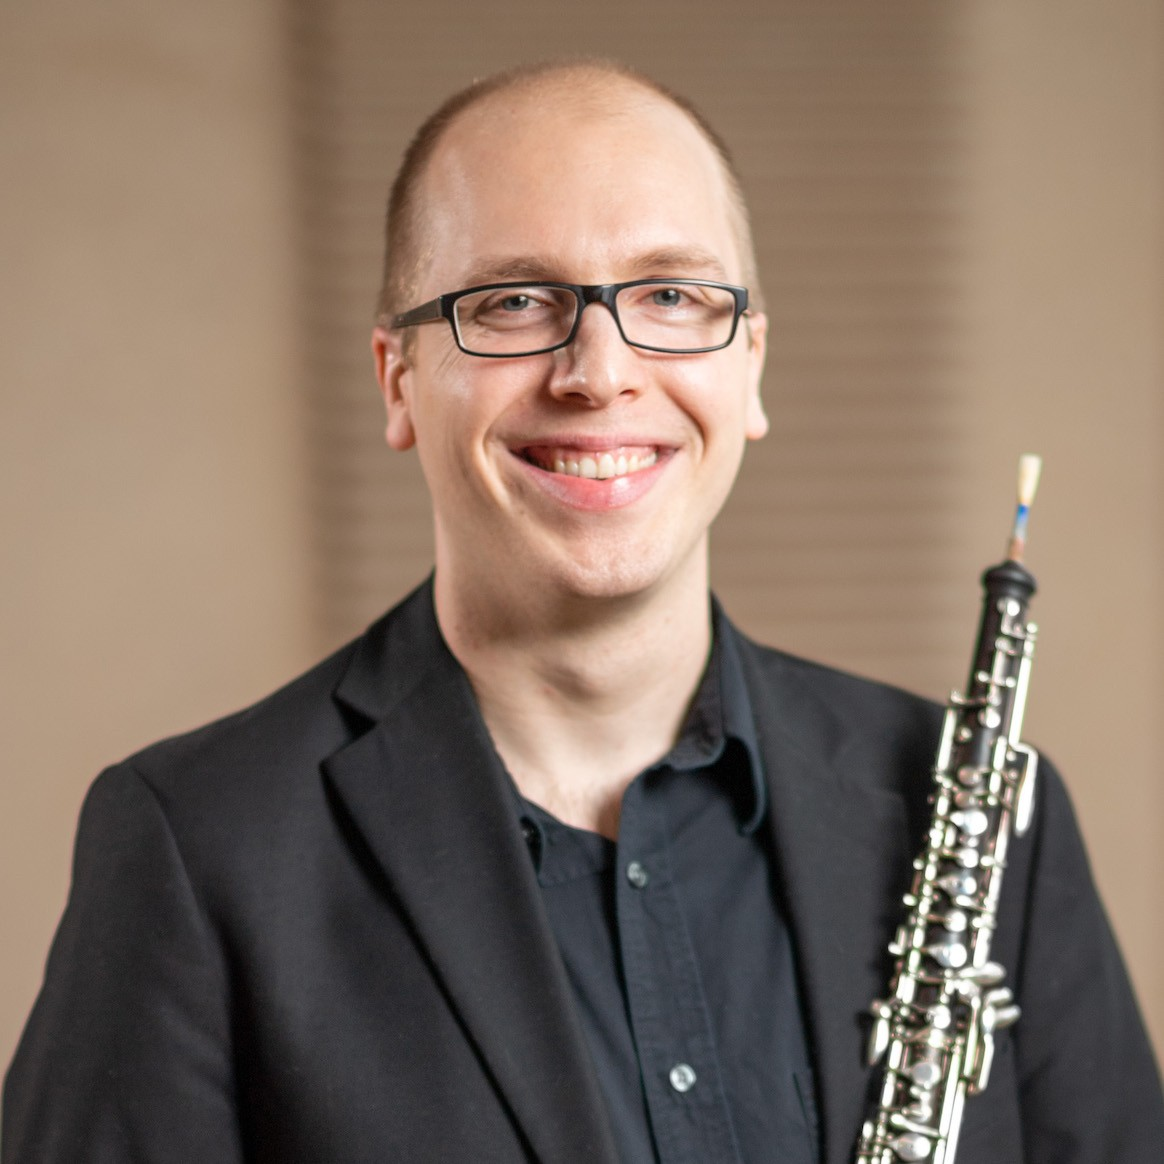 Headshot of Andreas Oeste, Lecturer of Music, Oboe